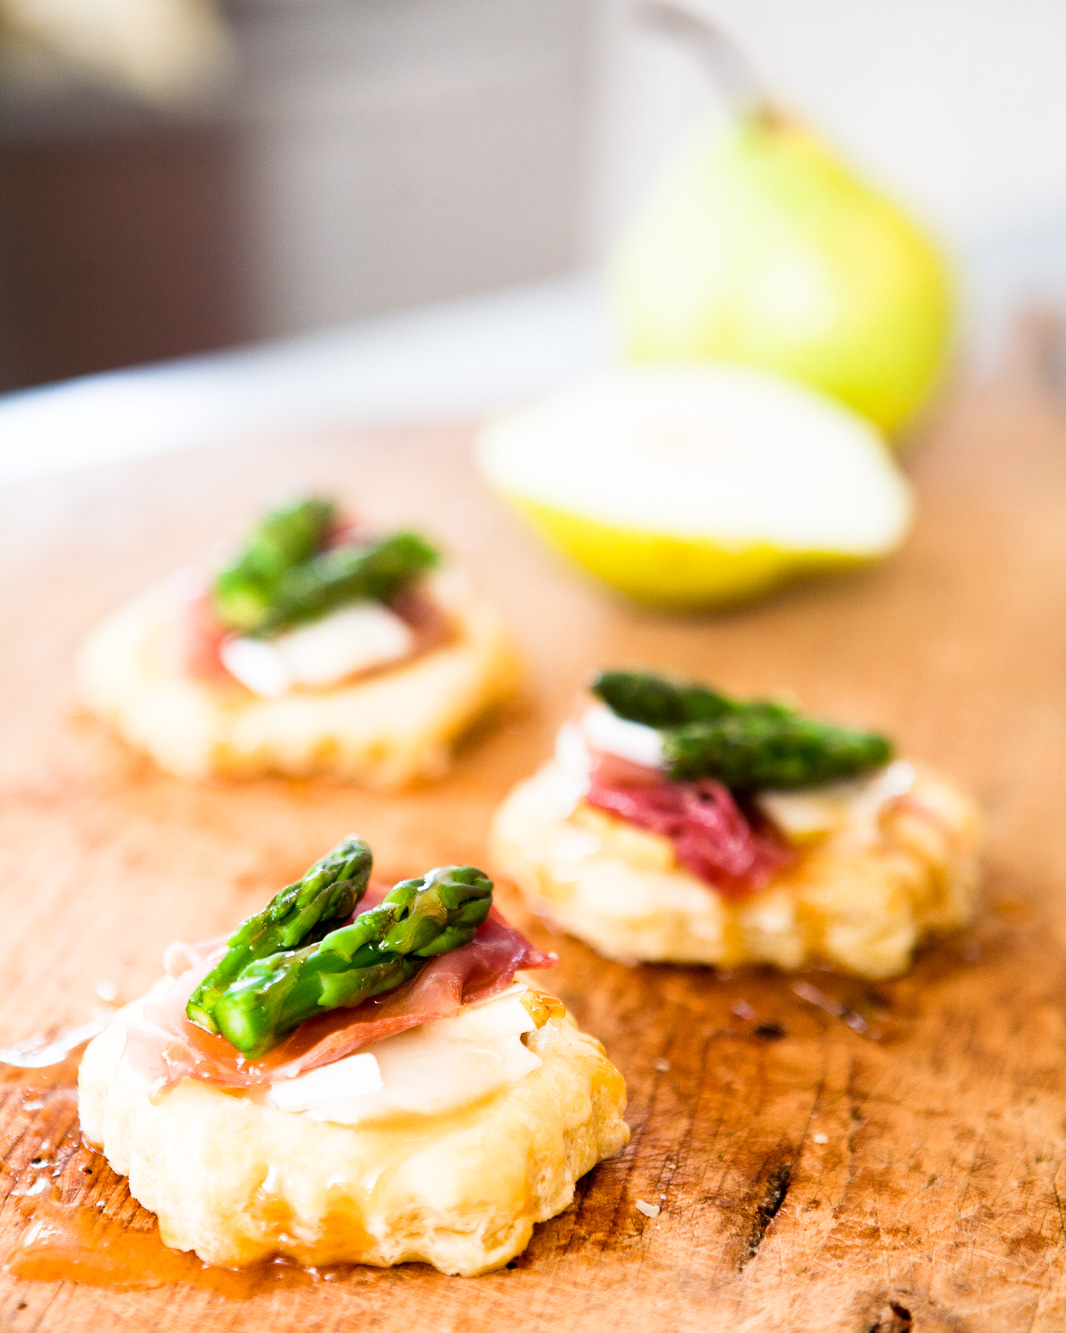 Pear, prosciutto, brie cheese and asparagus puff pastry tarts.